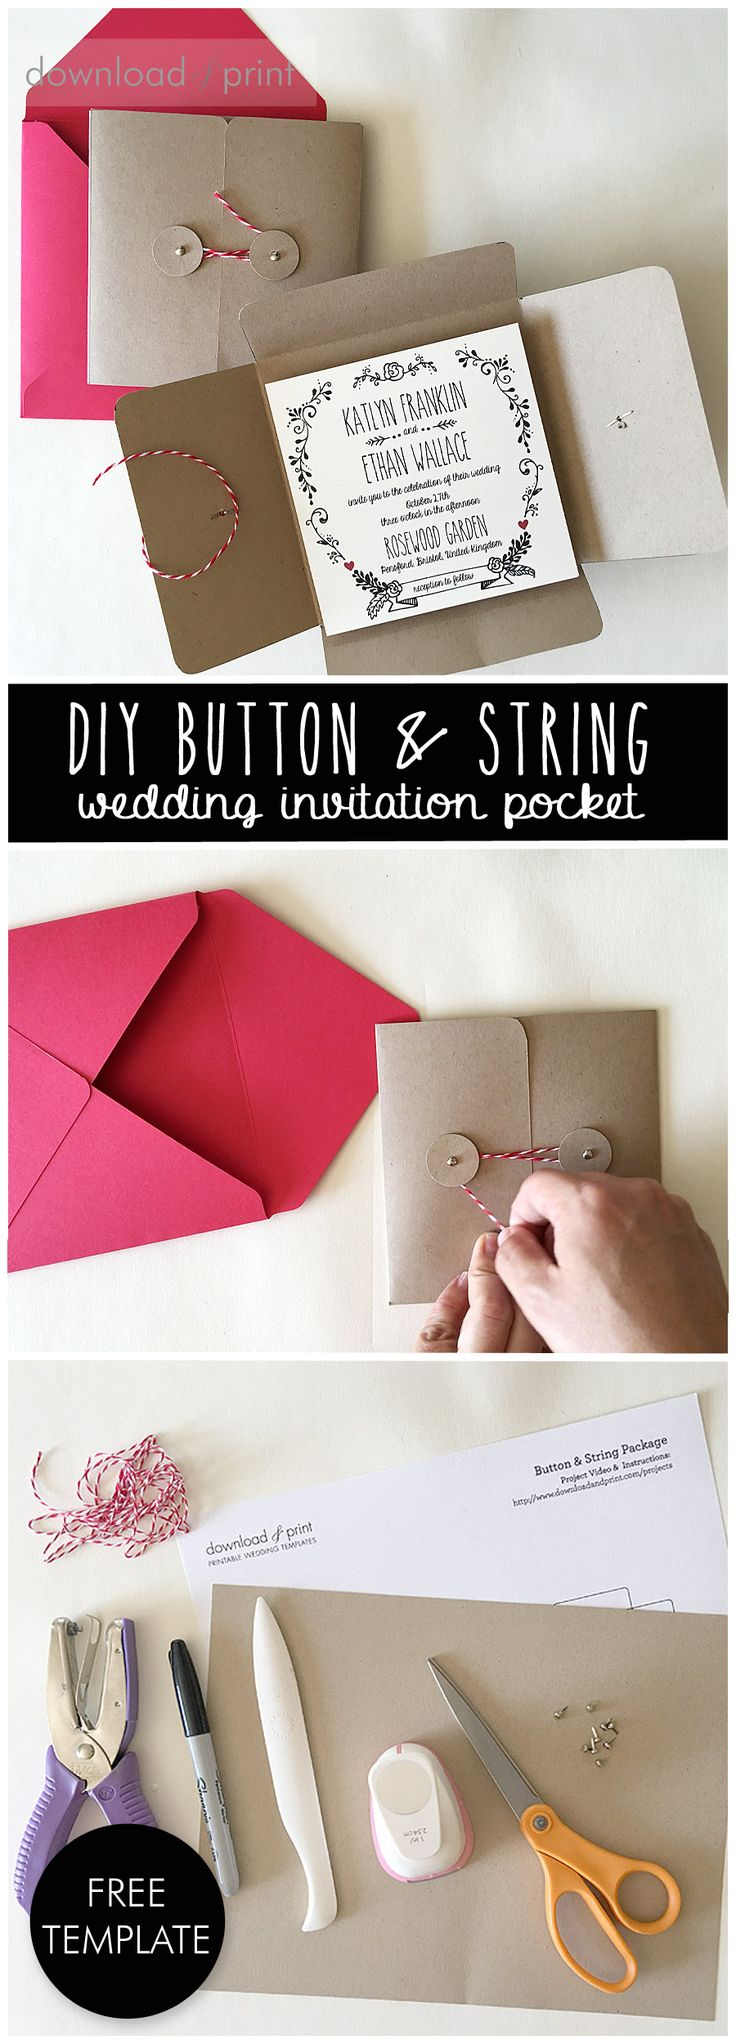 237 best Invitations images on Pinterest | Card wedding, Marriage ...